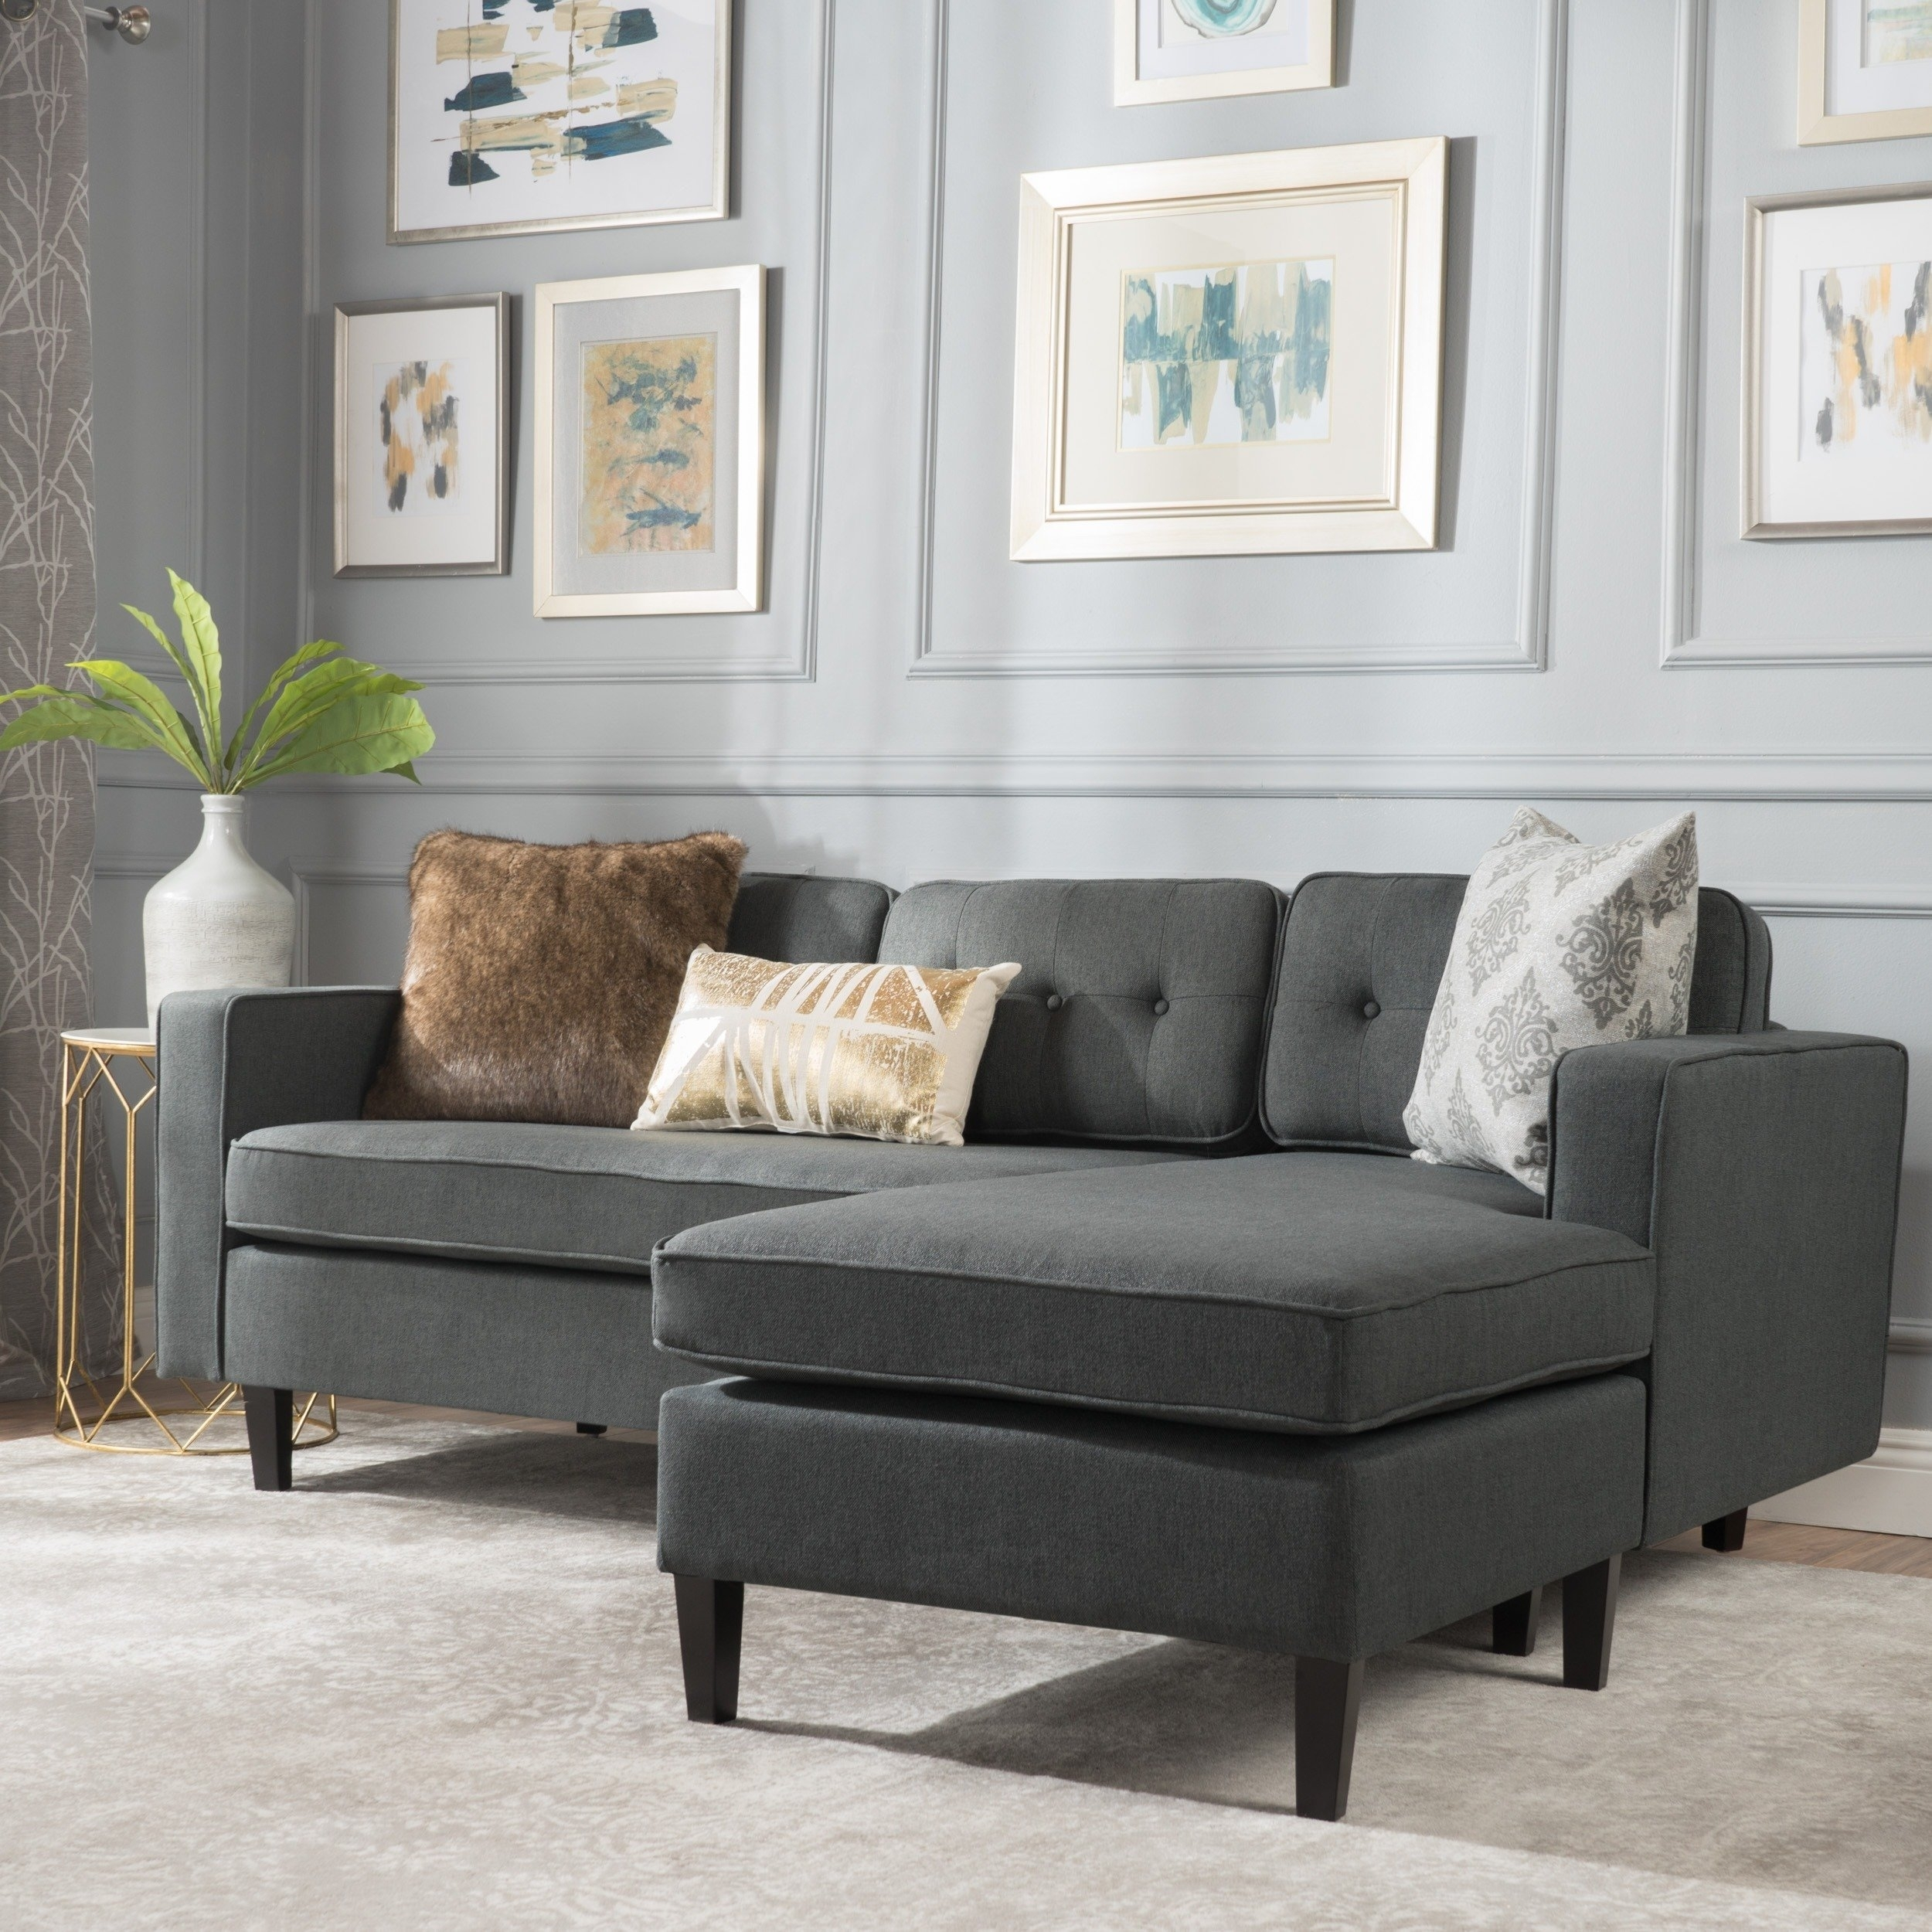 2 Piece Chaise Sectional Sofa | Baci Living Room inside Tenny Dark Grey 2 Piece Left Facing Chaise Sectionals With 2 Headrest (Image 2 of 30)